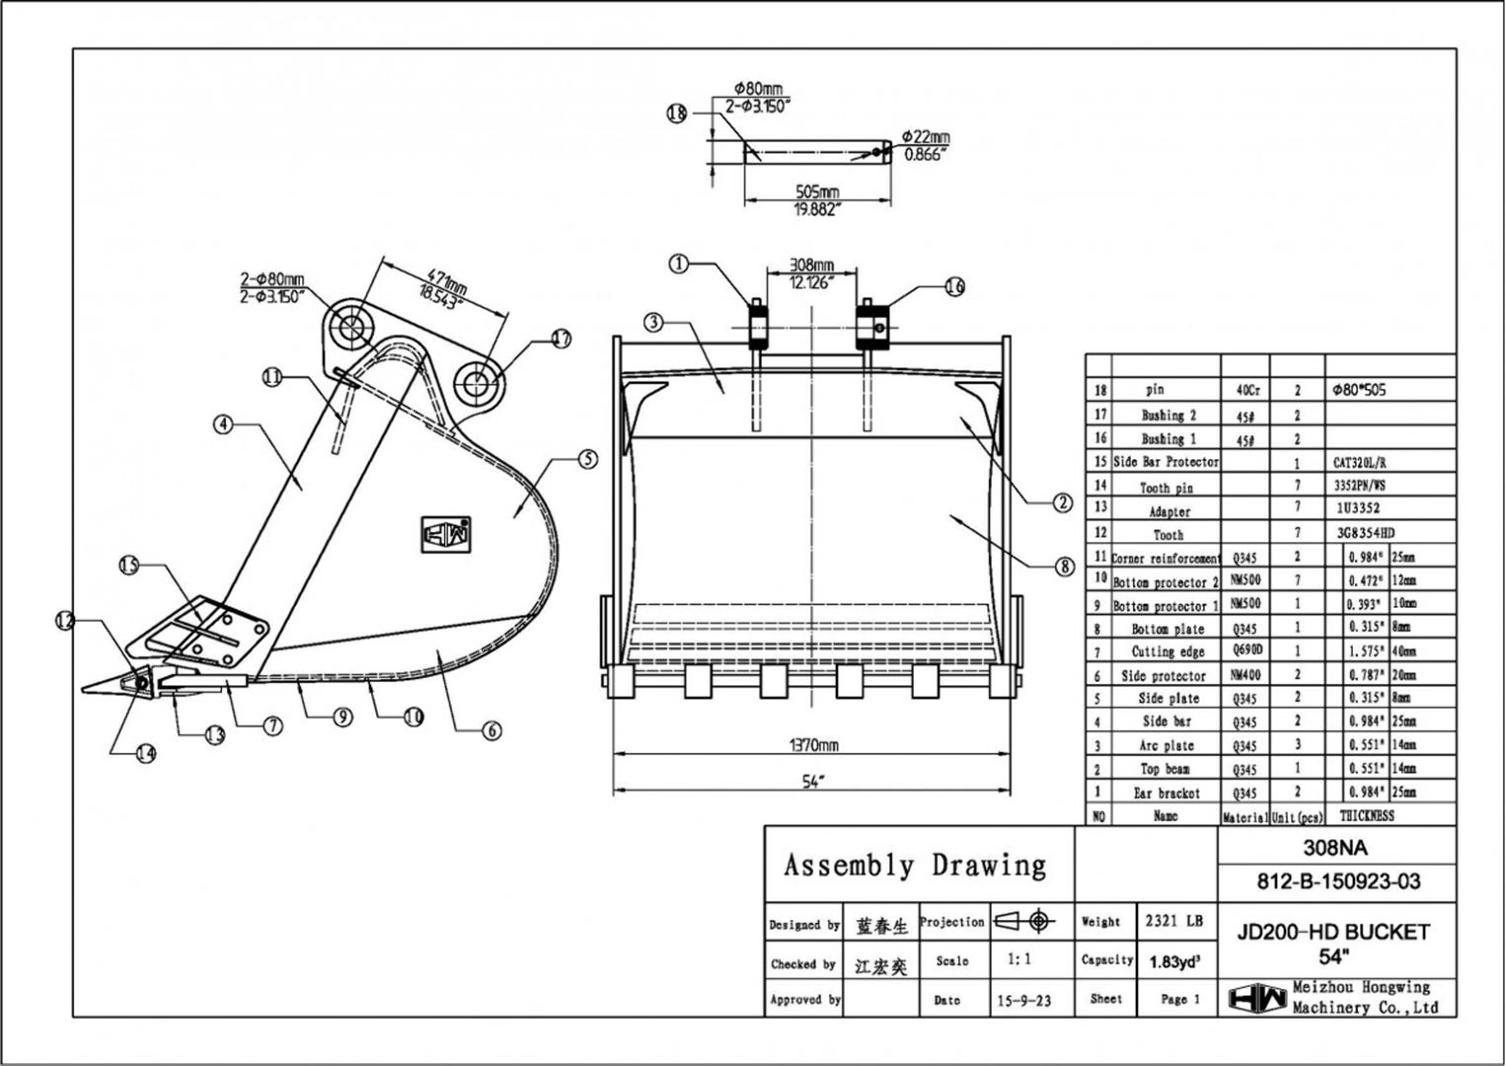 John Deere 200 Excavator Fuse Panel Diagram For 5320 4500 Box 5